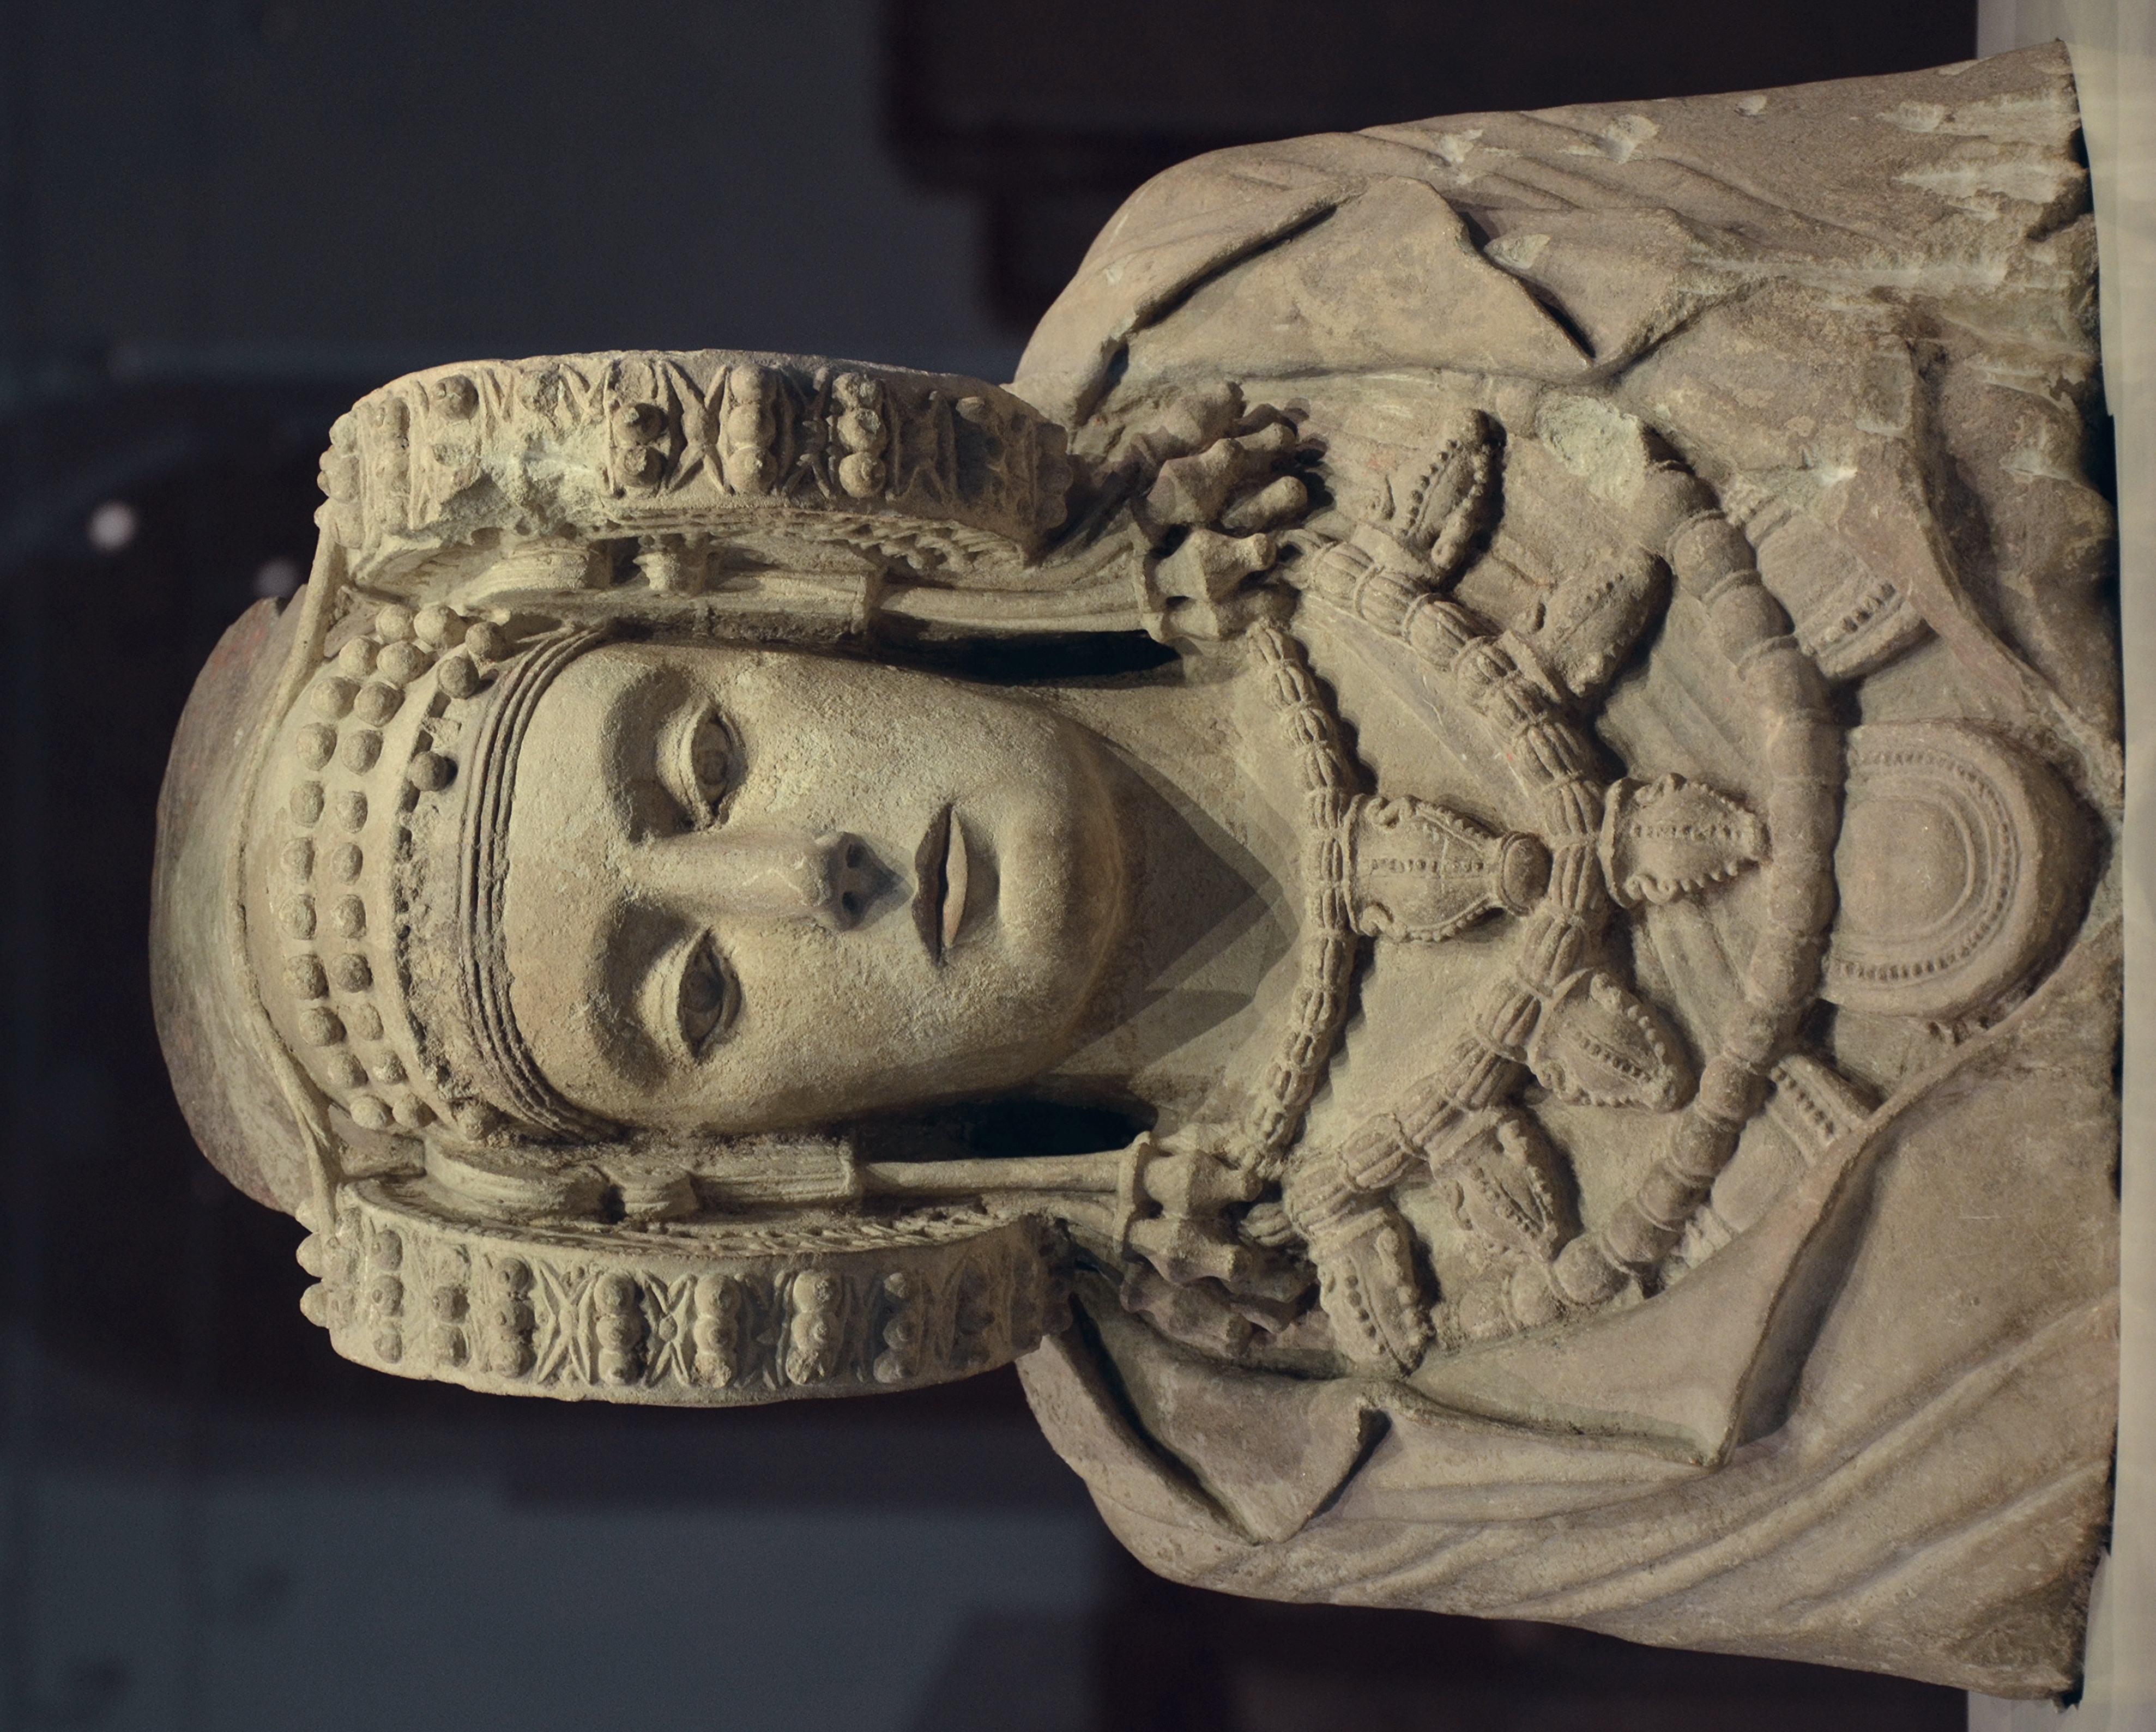 The [[Lady of Elche